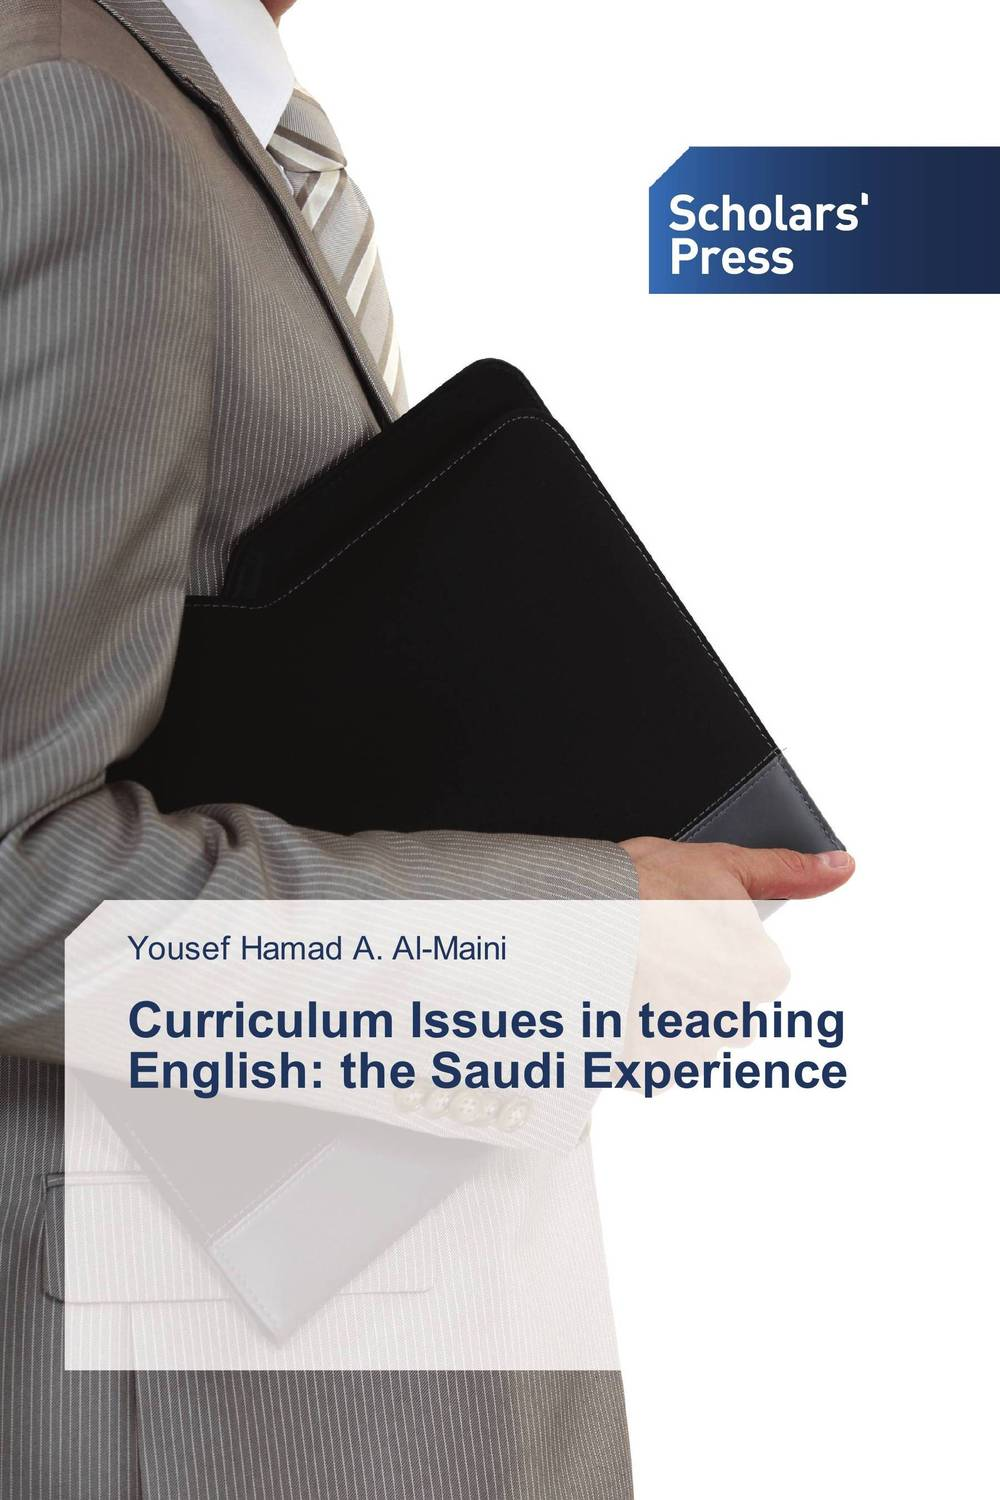 Curriculum Issues in teaching English: the Saudi Experience exploring issues in teaching writing in esl at secondary school level